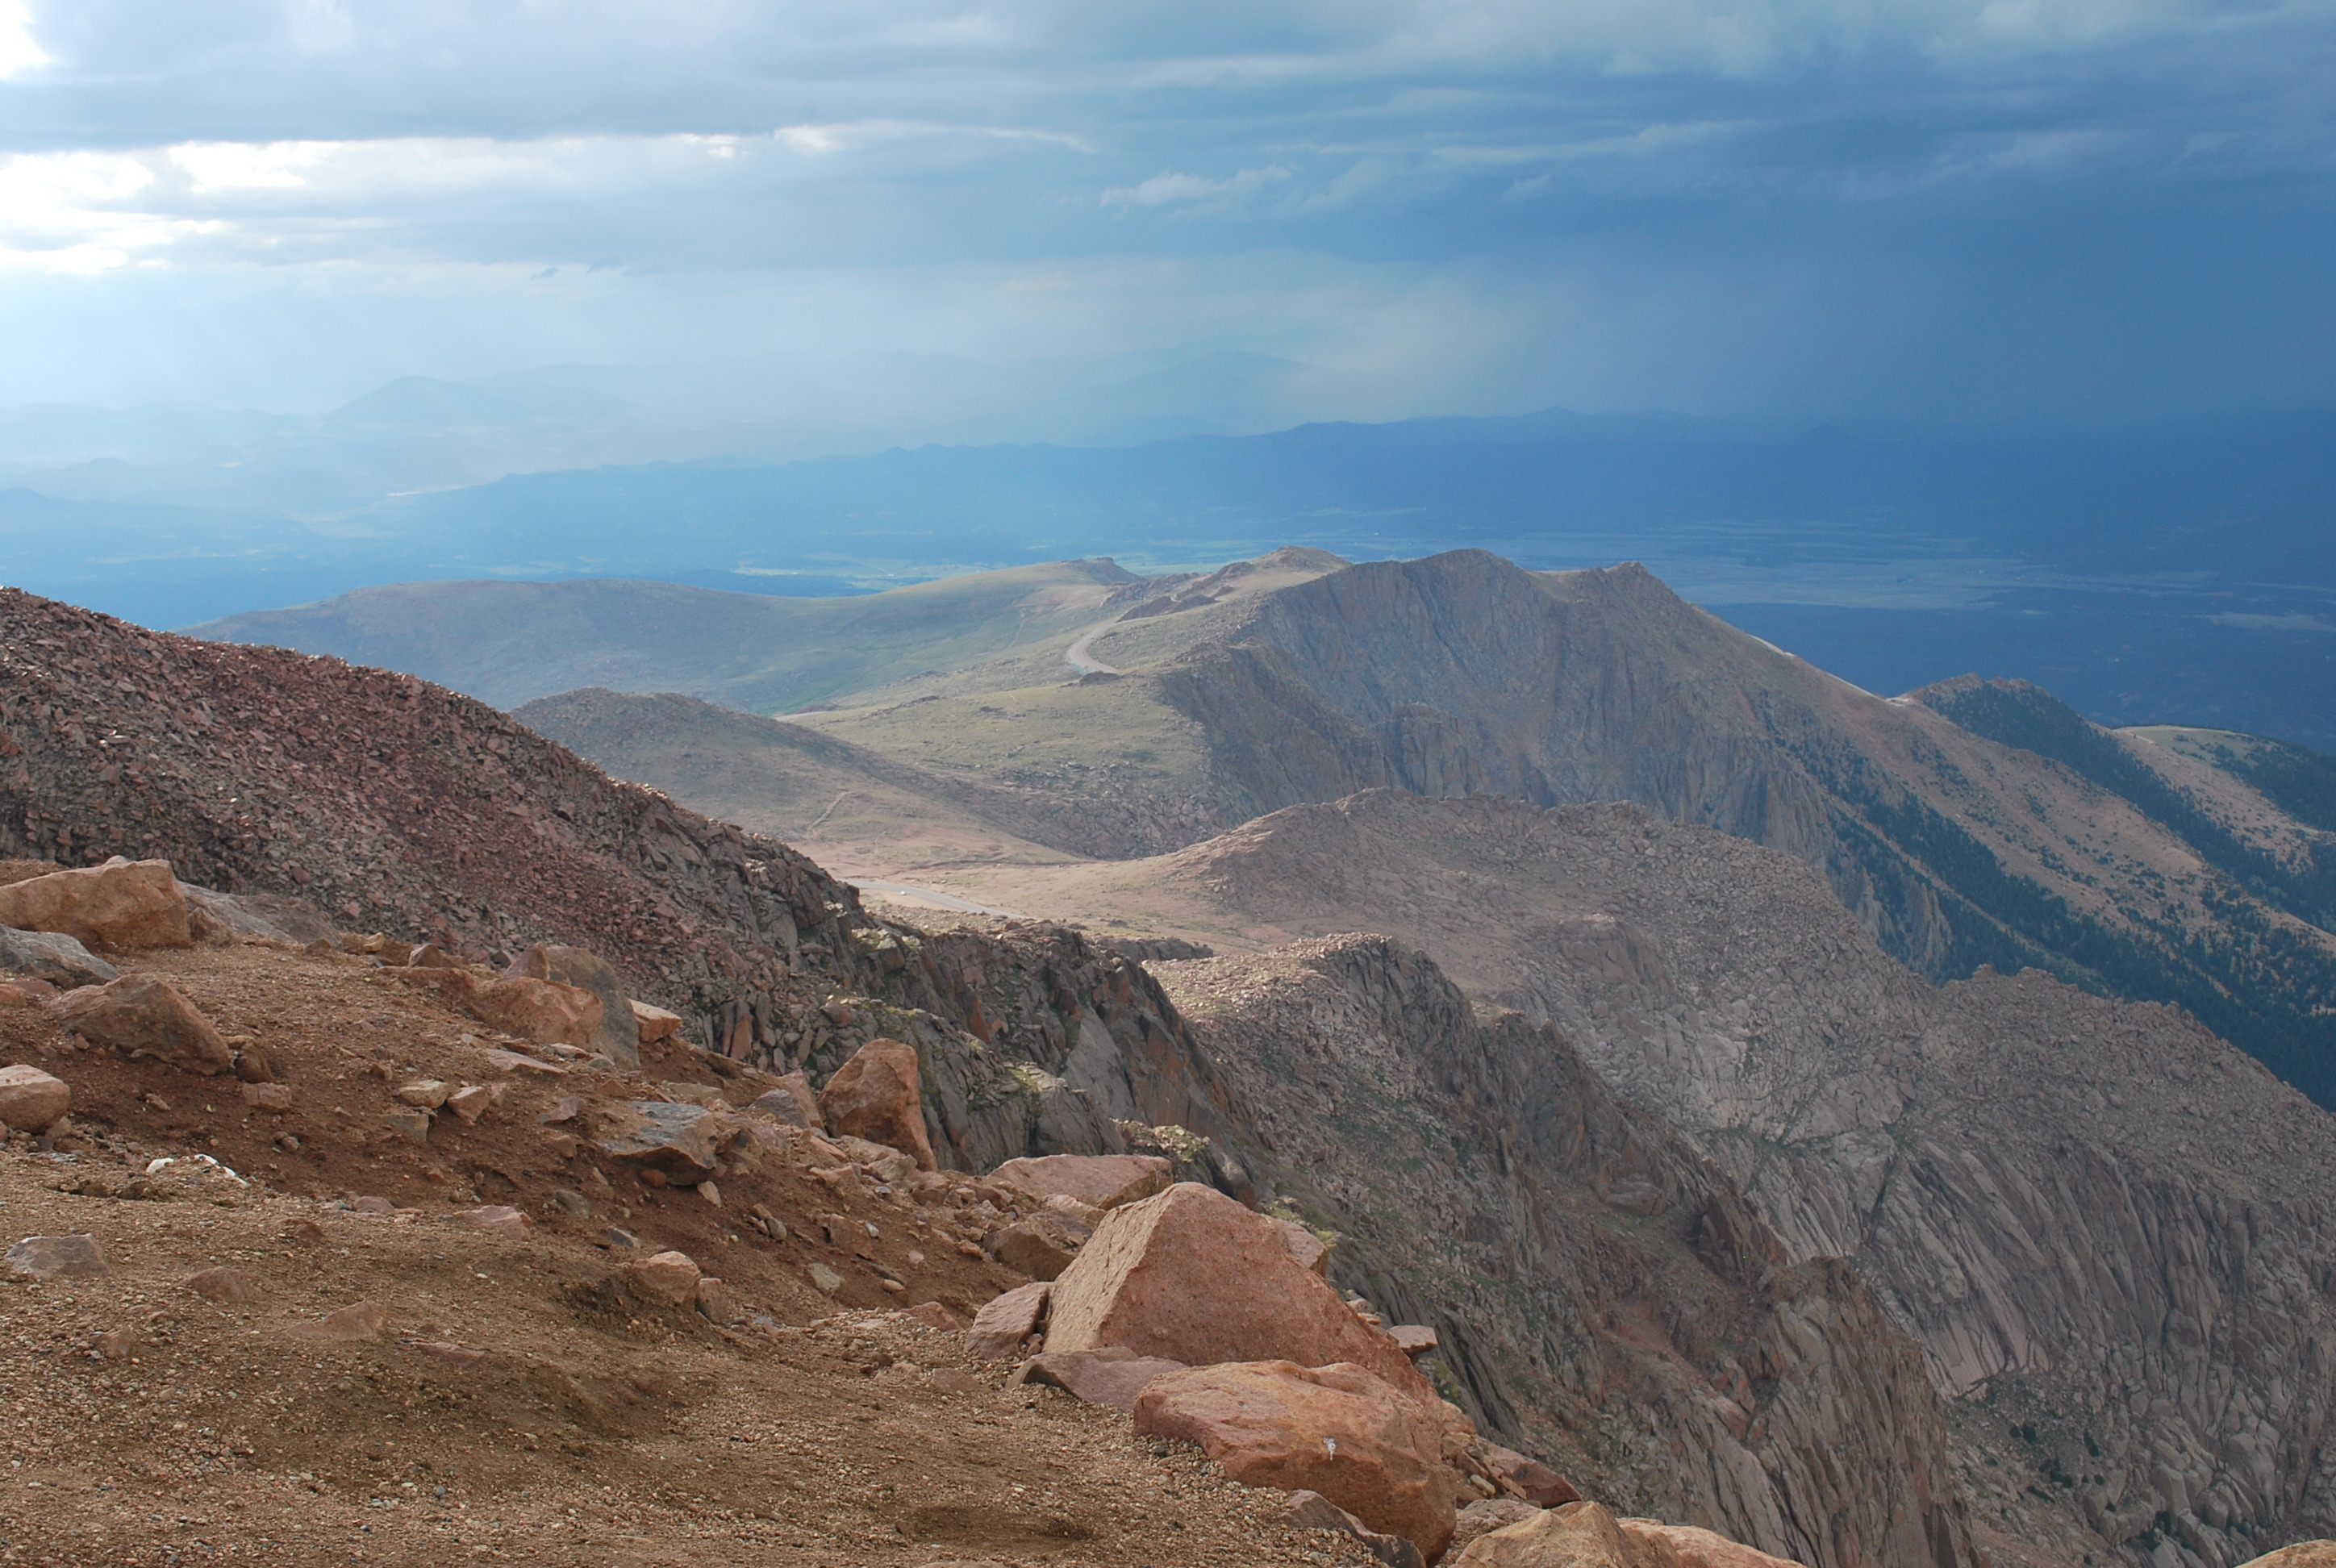 Pikes Peak Coffee >> The View at the Top of Pikes Peak | lovelivingincolorado